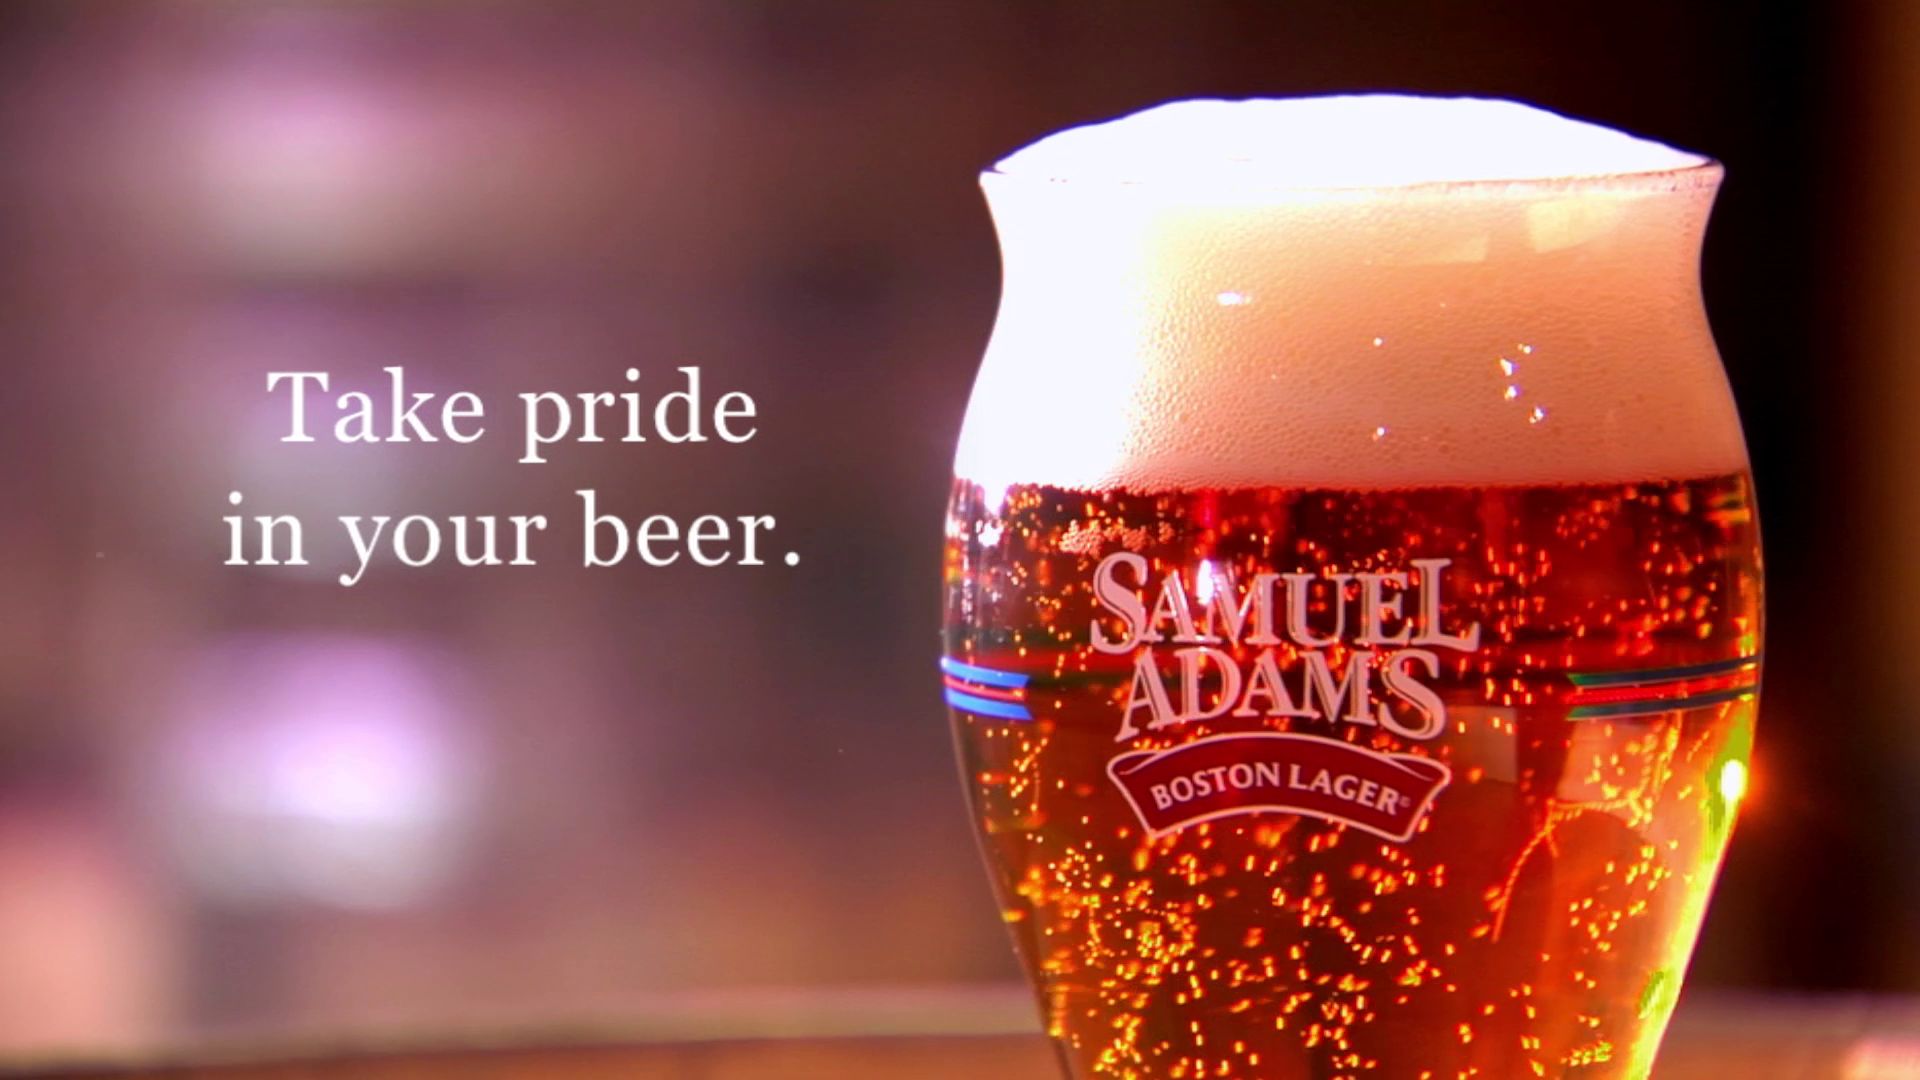 Galileo Media Arts produces commercial for Samuel Adams Boston Lager glass